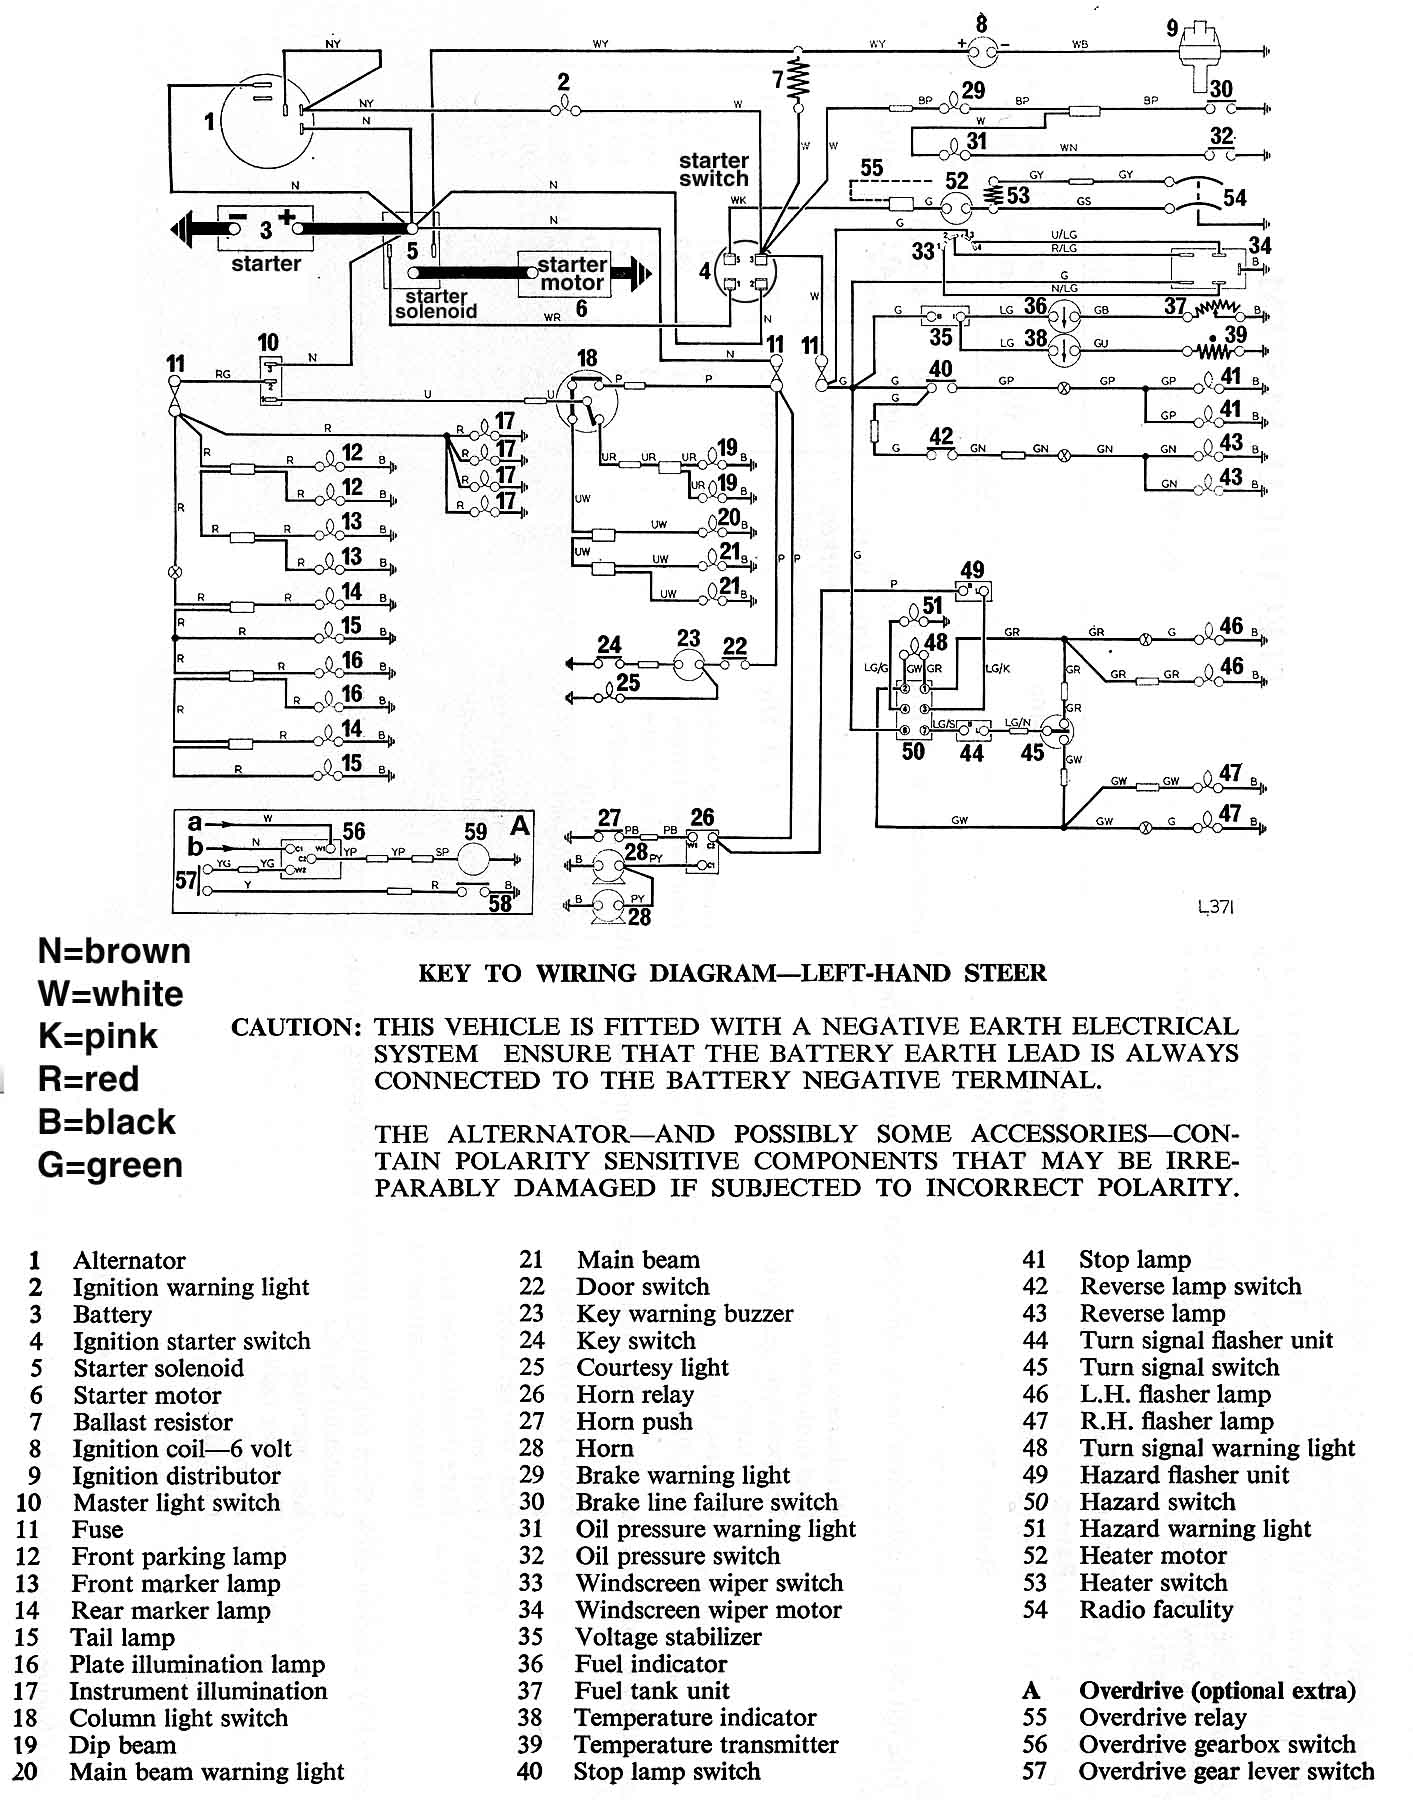 MKIVwire wiring schematics and diagrams triumph spitfire, gt6, herald 73 triumph spitfire 1500 wiring harness at readyjetset.co